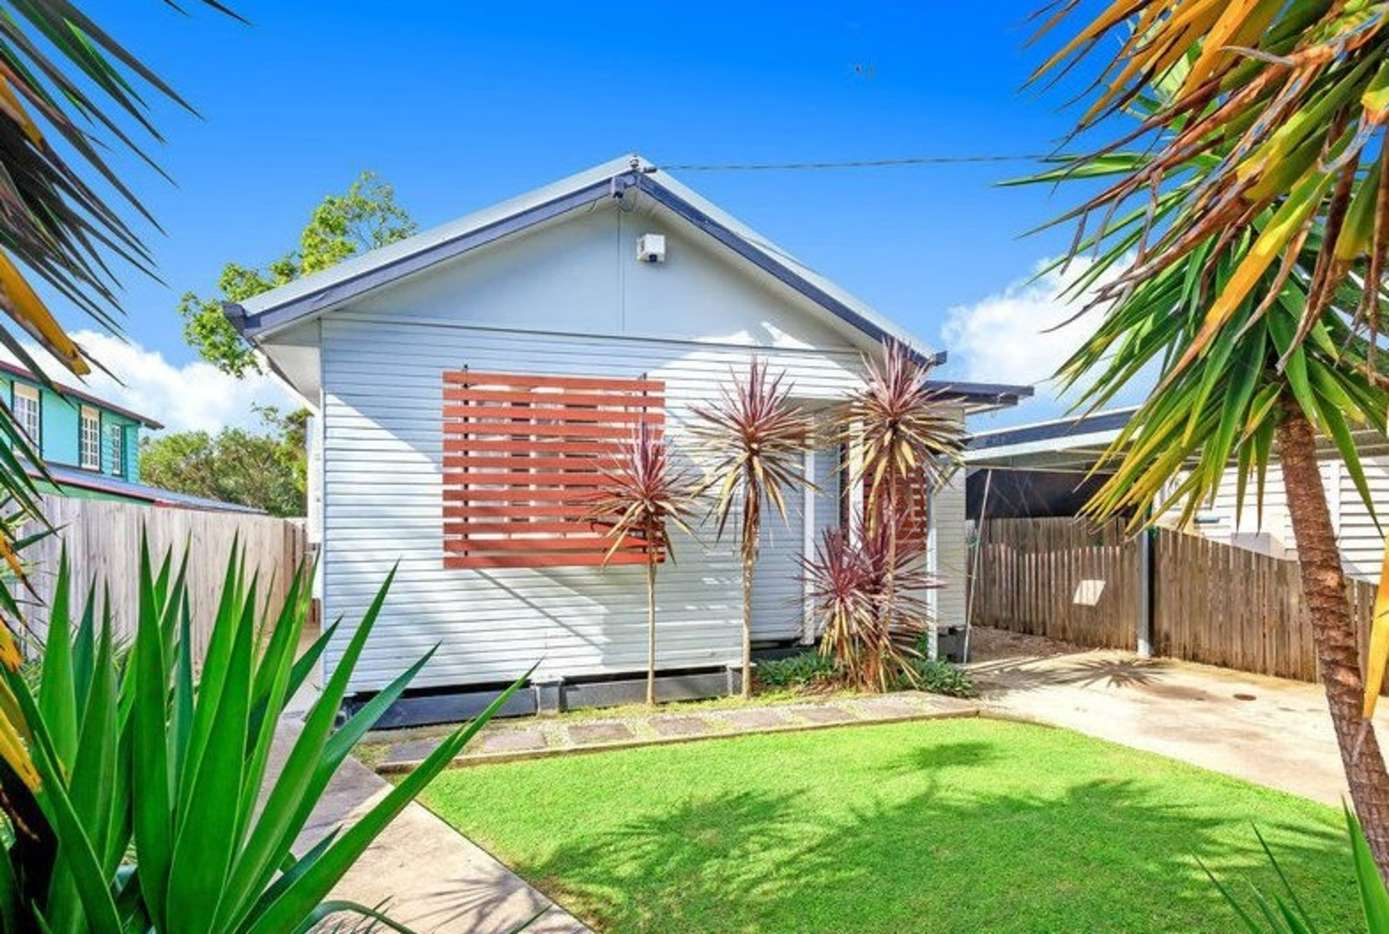 Main view of Homely house listing, 82 Adams Street, Deagon, QLD 4017